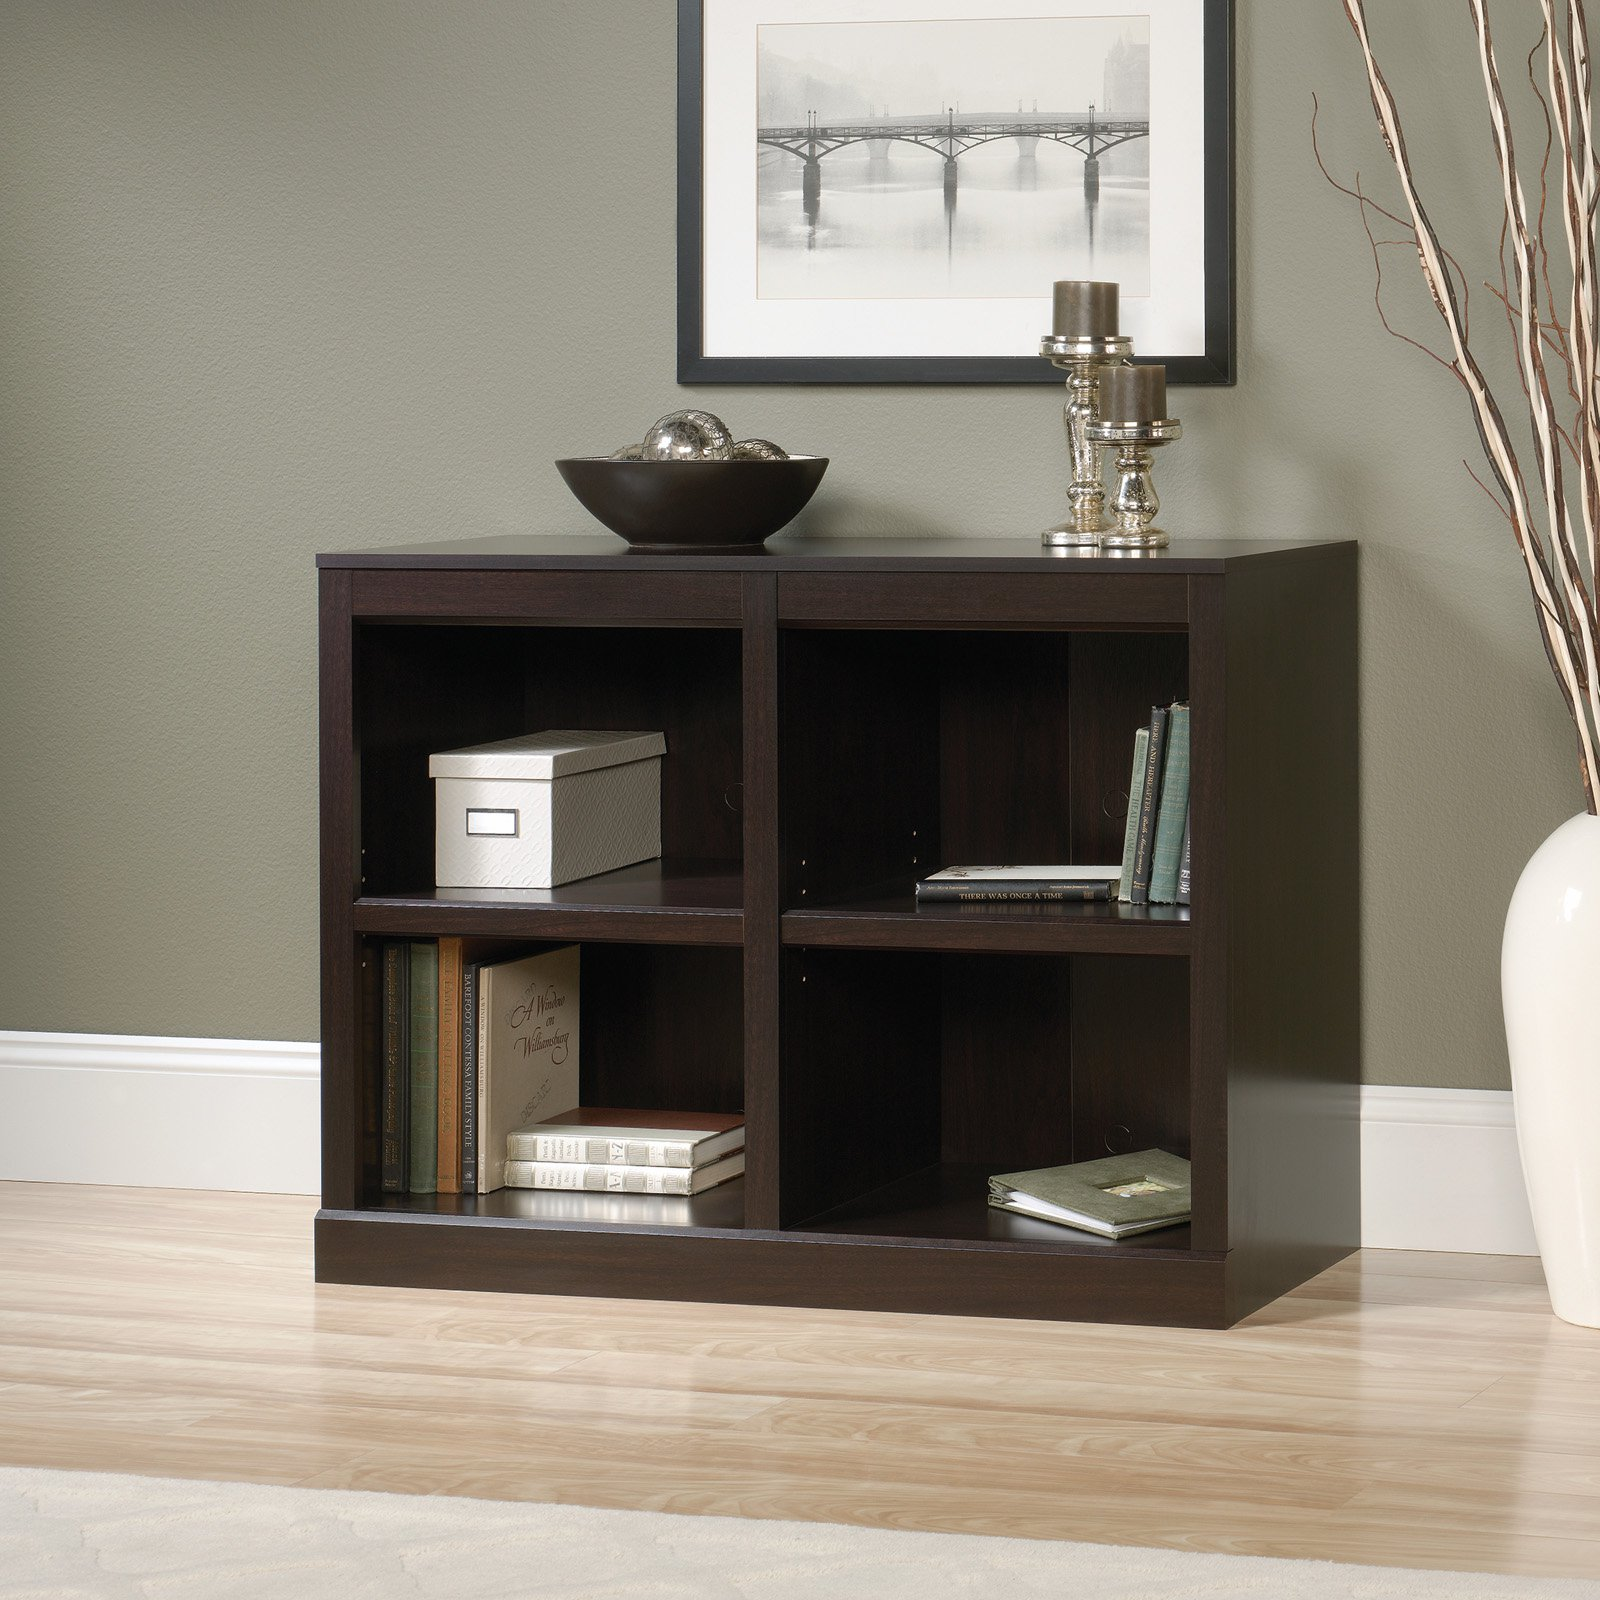 Sauder Select Cubby Bookcase